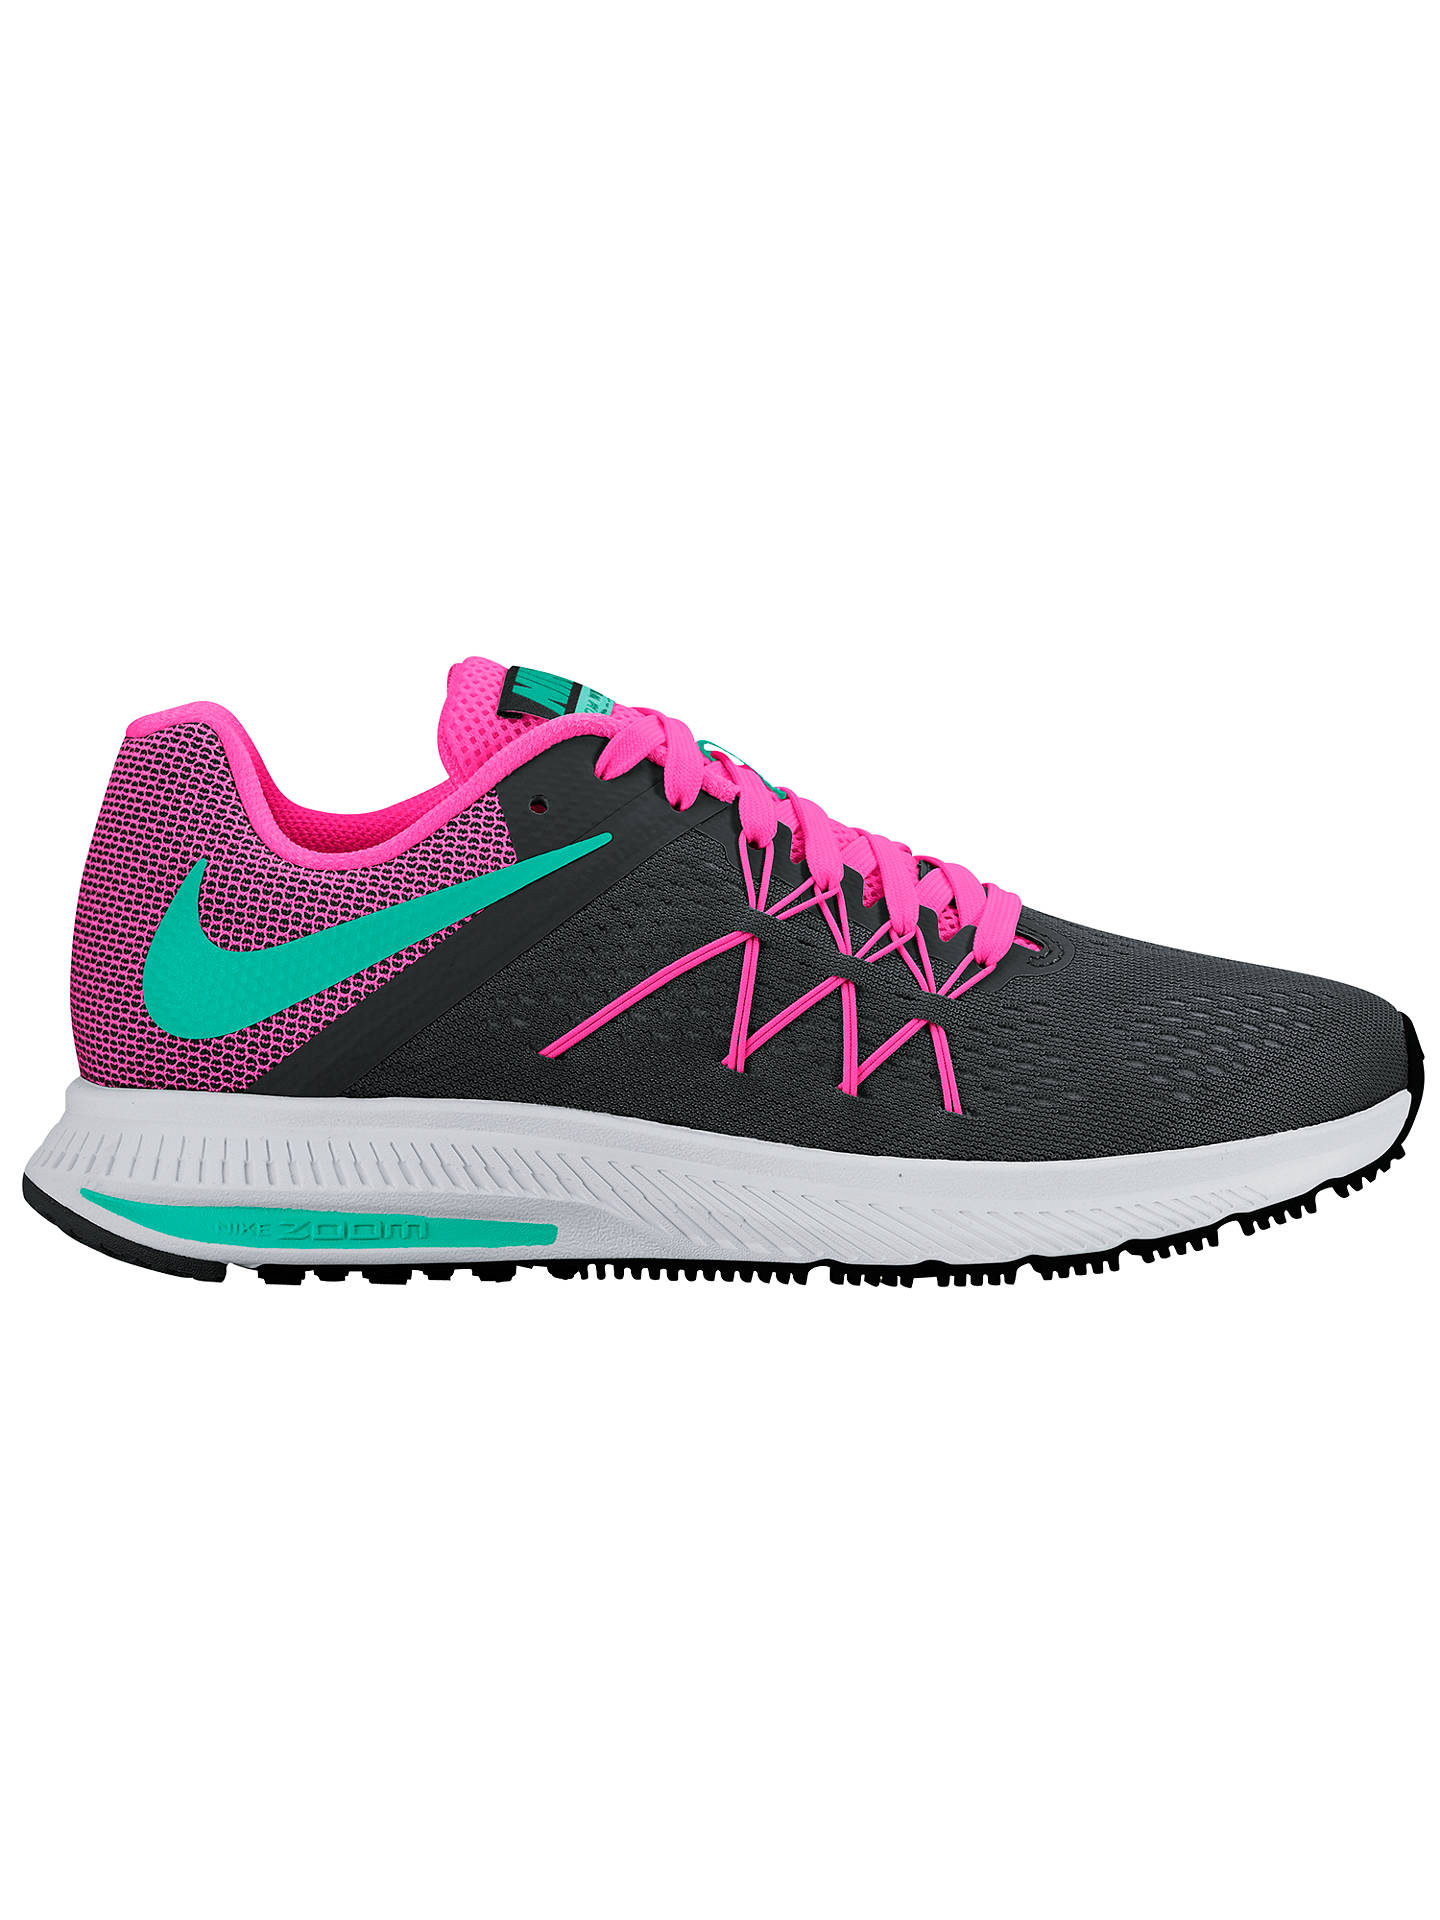 ed14c1f23d2 Buy Nike Air Zoom Winflo 3 Women s Running Shoes